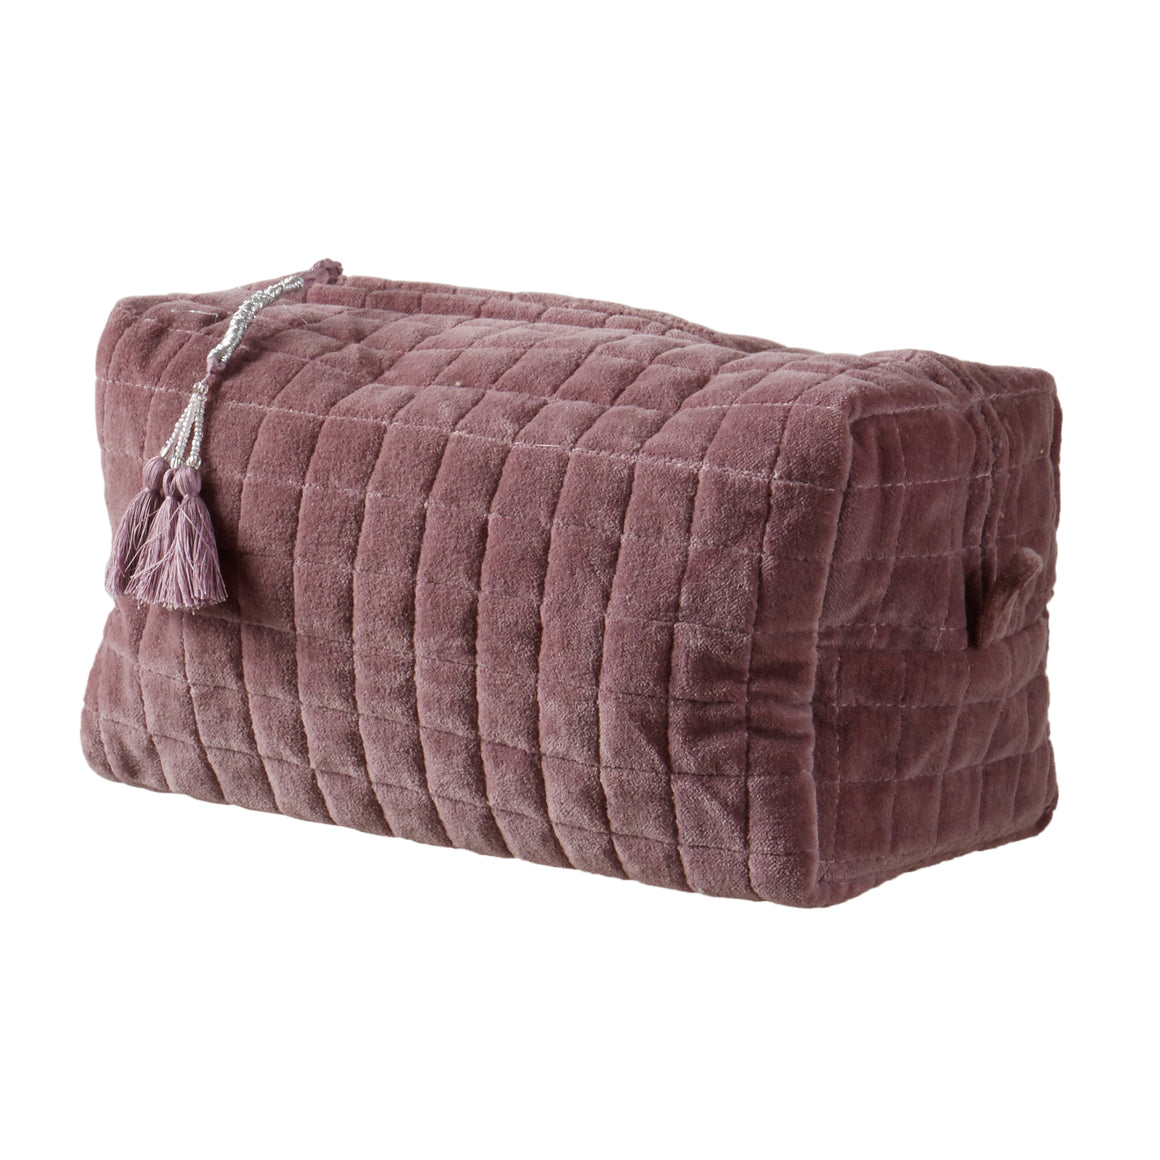 QUILTED VELVET COSMETIC BAG LIGHT PURPLE XL - McHugh Lifestyle BOHEMIAN GLAMOUR